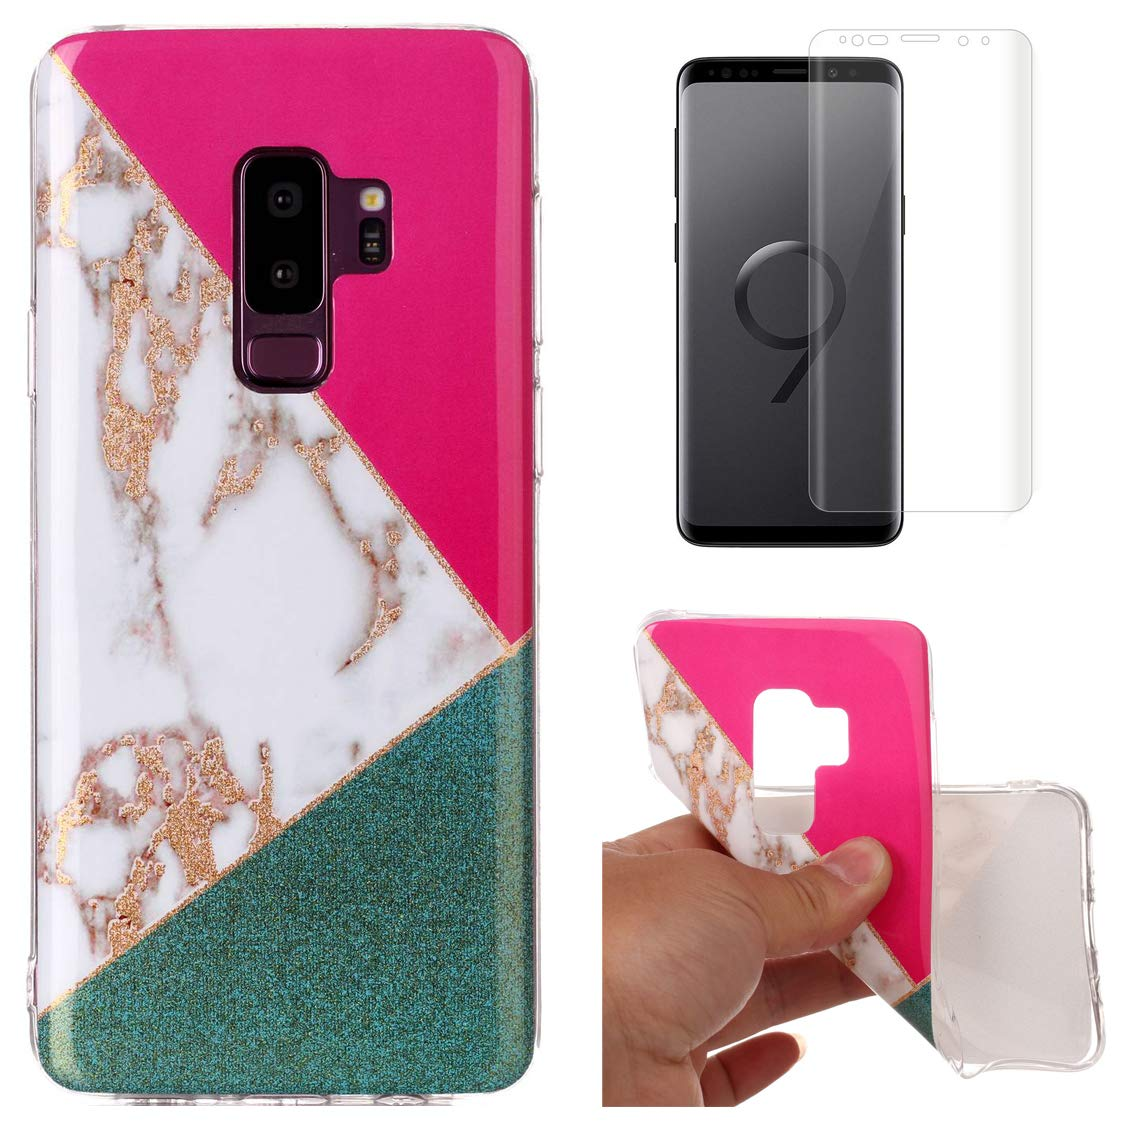 for Samsung Galaxy S9 Marble Case with Screen Protector, OYIME Creative Glossy Purple & White Marble Pattern Design Protective Bumper Soft Silicone Slim Thin Rubber Luxury Shockproof Cover